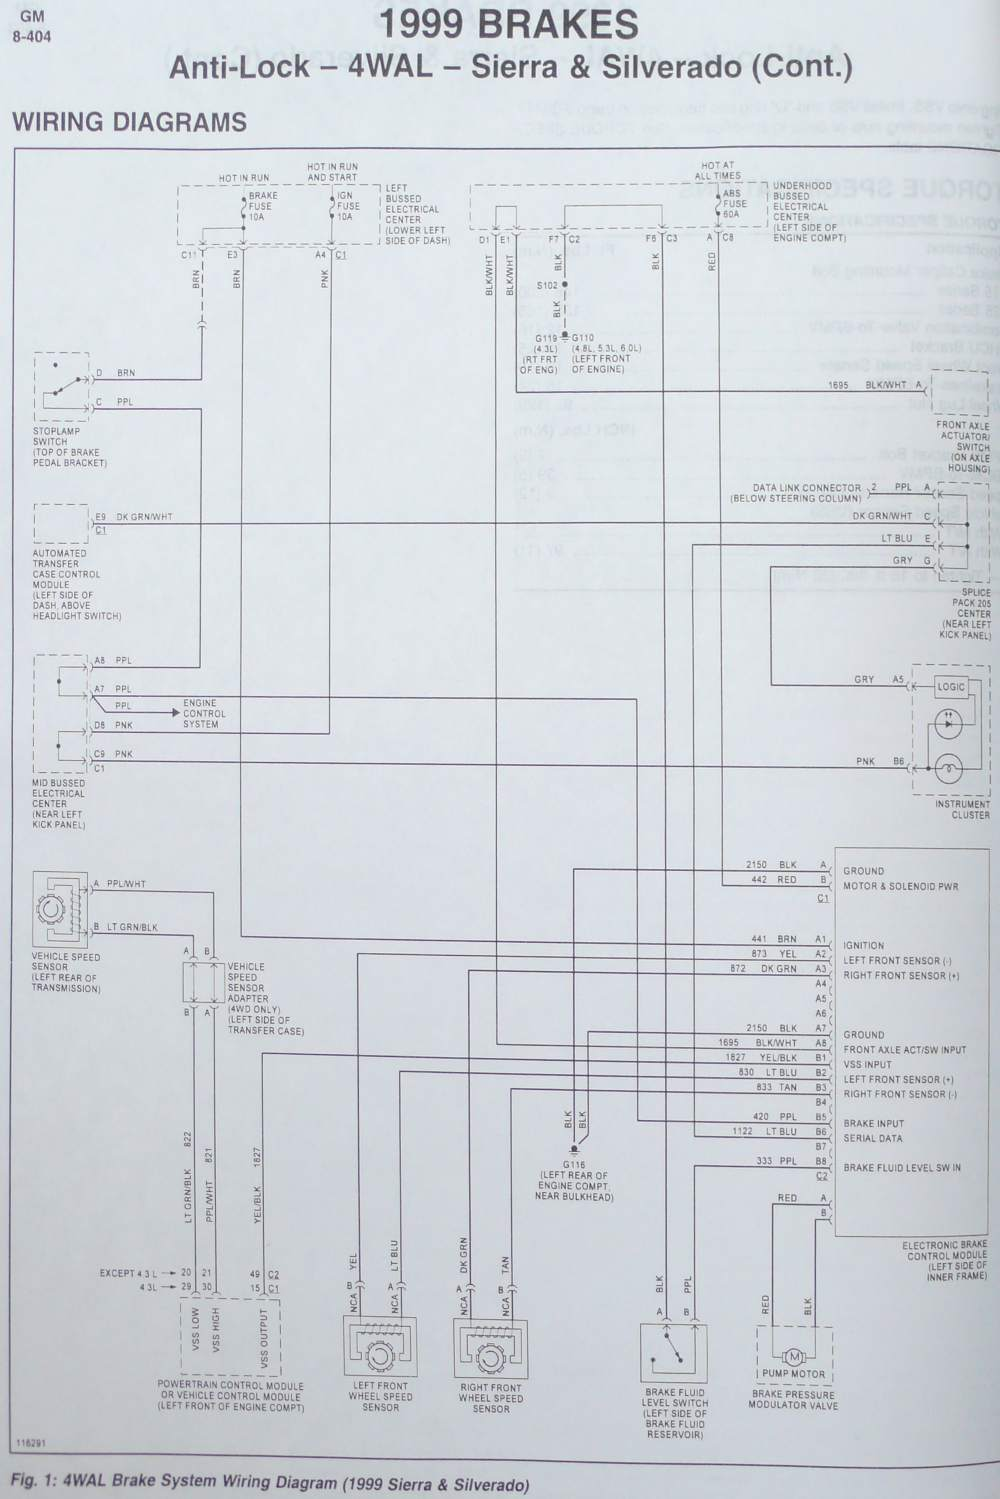 Need Wiring Diagram For Kelsey Hayes 325  To Troubleshoot An